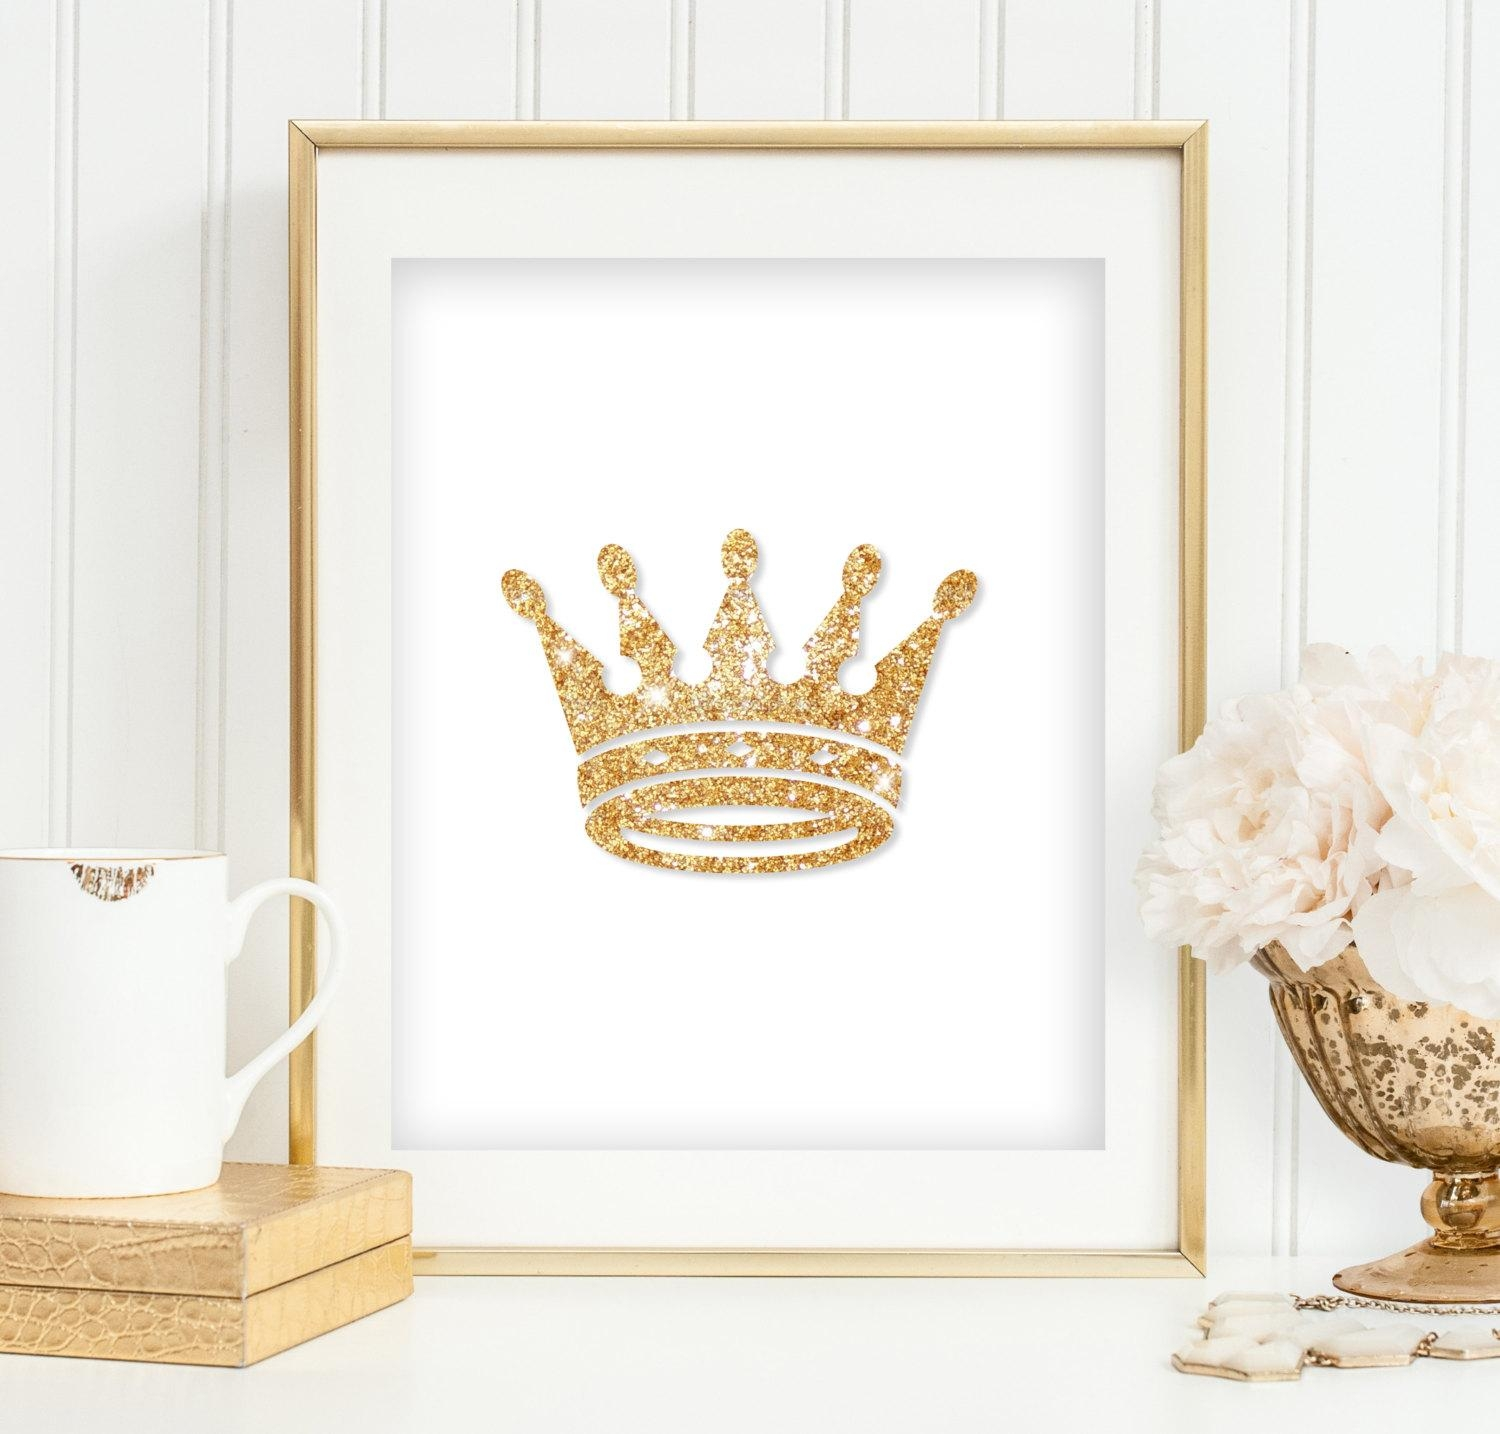 Gold Glitter Crown Print Girl's Bedroom Wall Art Princess with regard to Princess Crown Wall Art